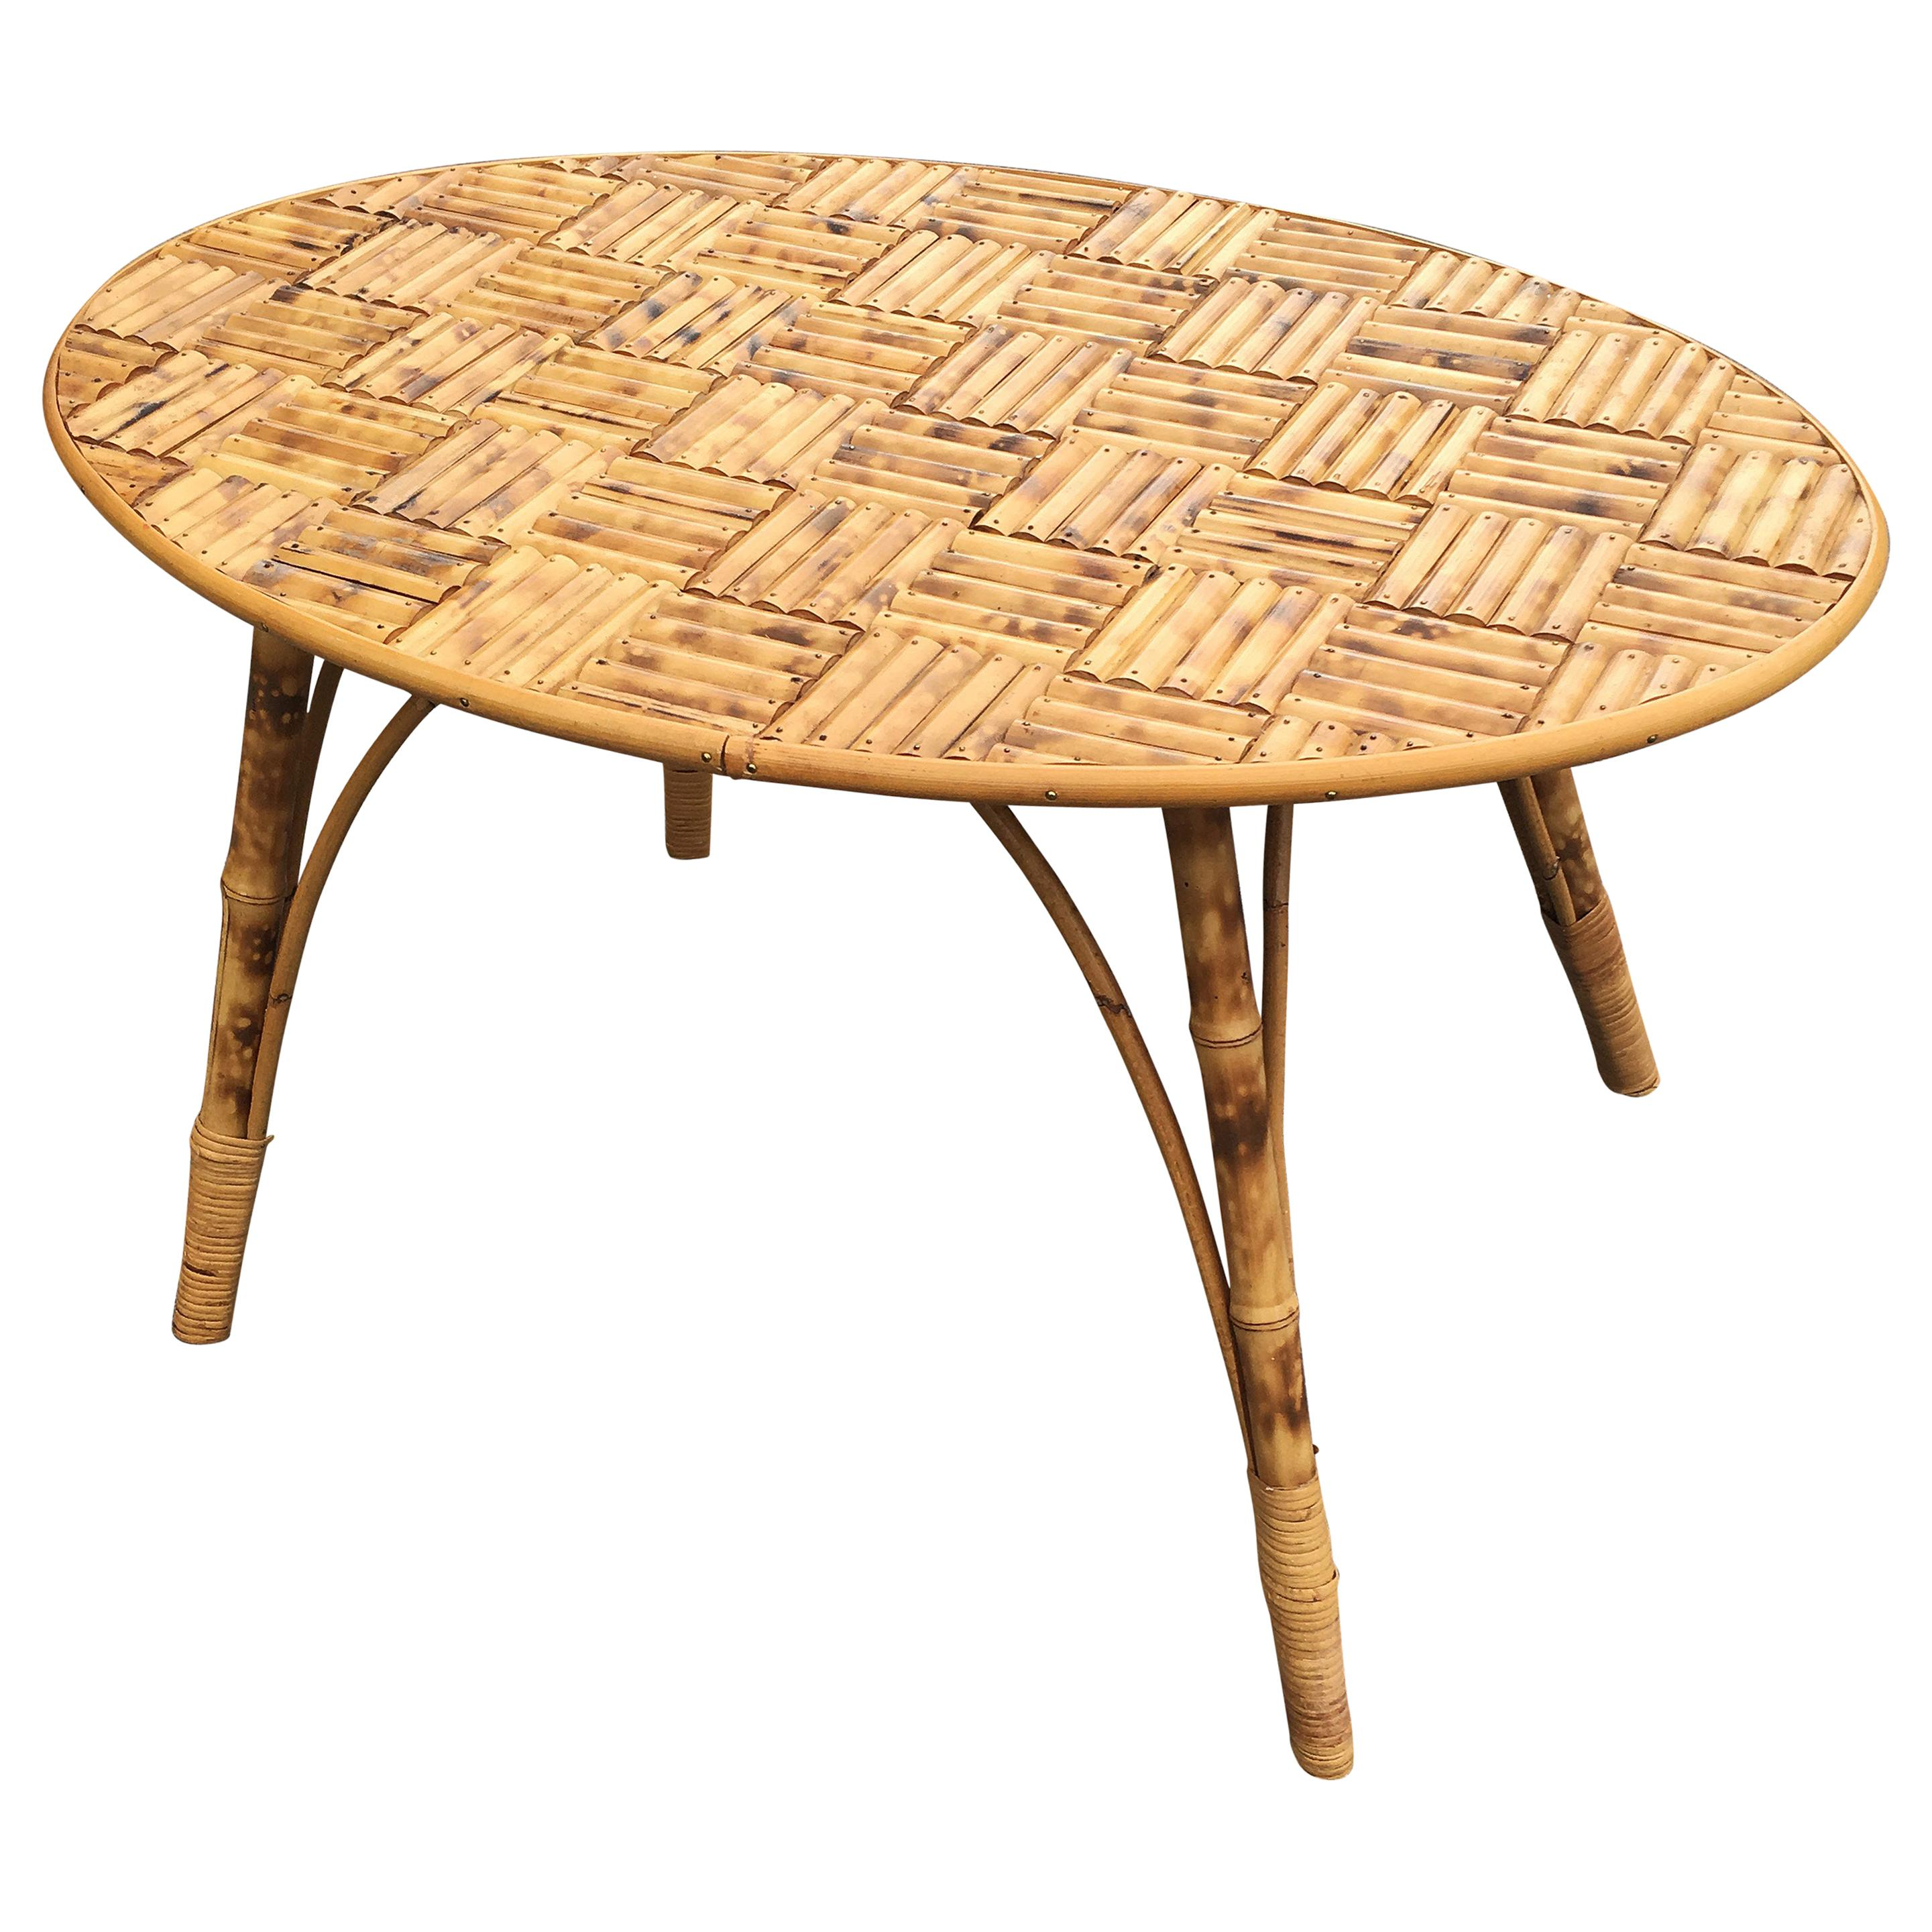 Bamboo Coffee Table Tray Made Of Sticks Fixed By Small Br Nails For At 1stdibs